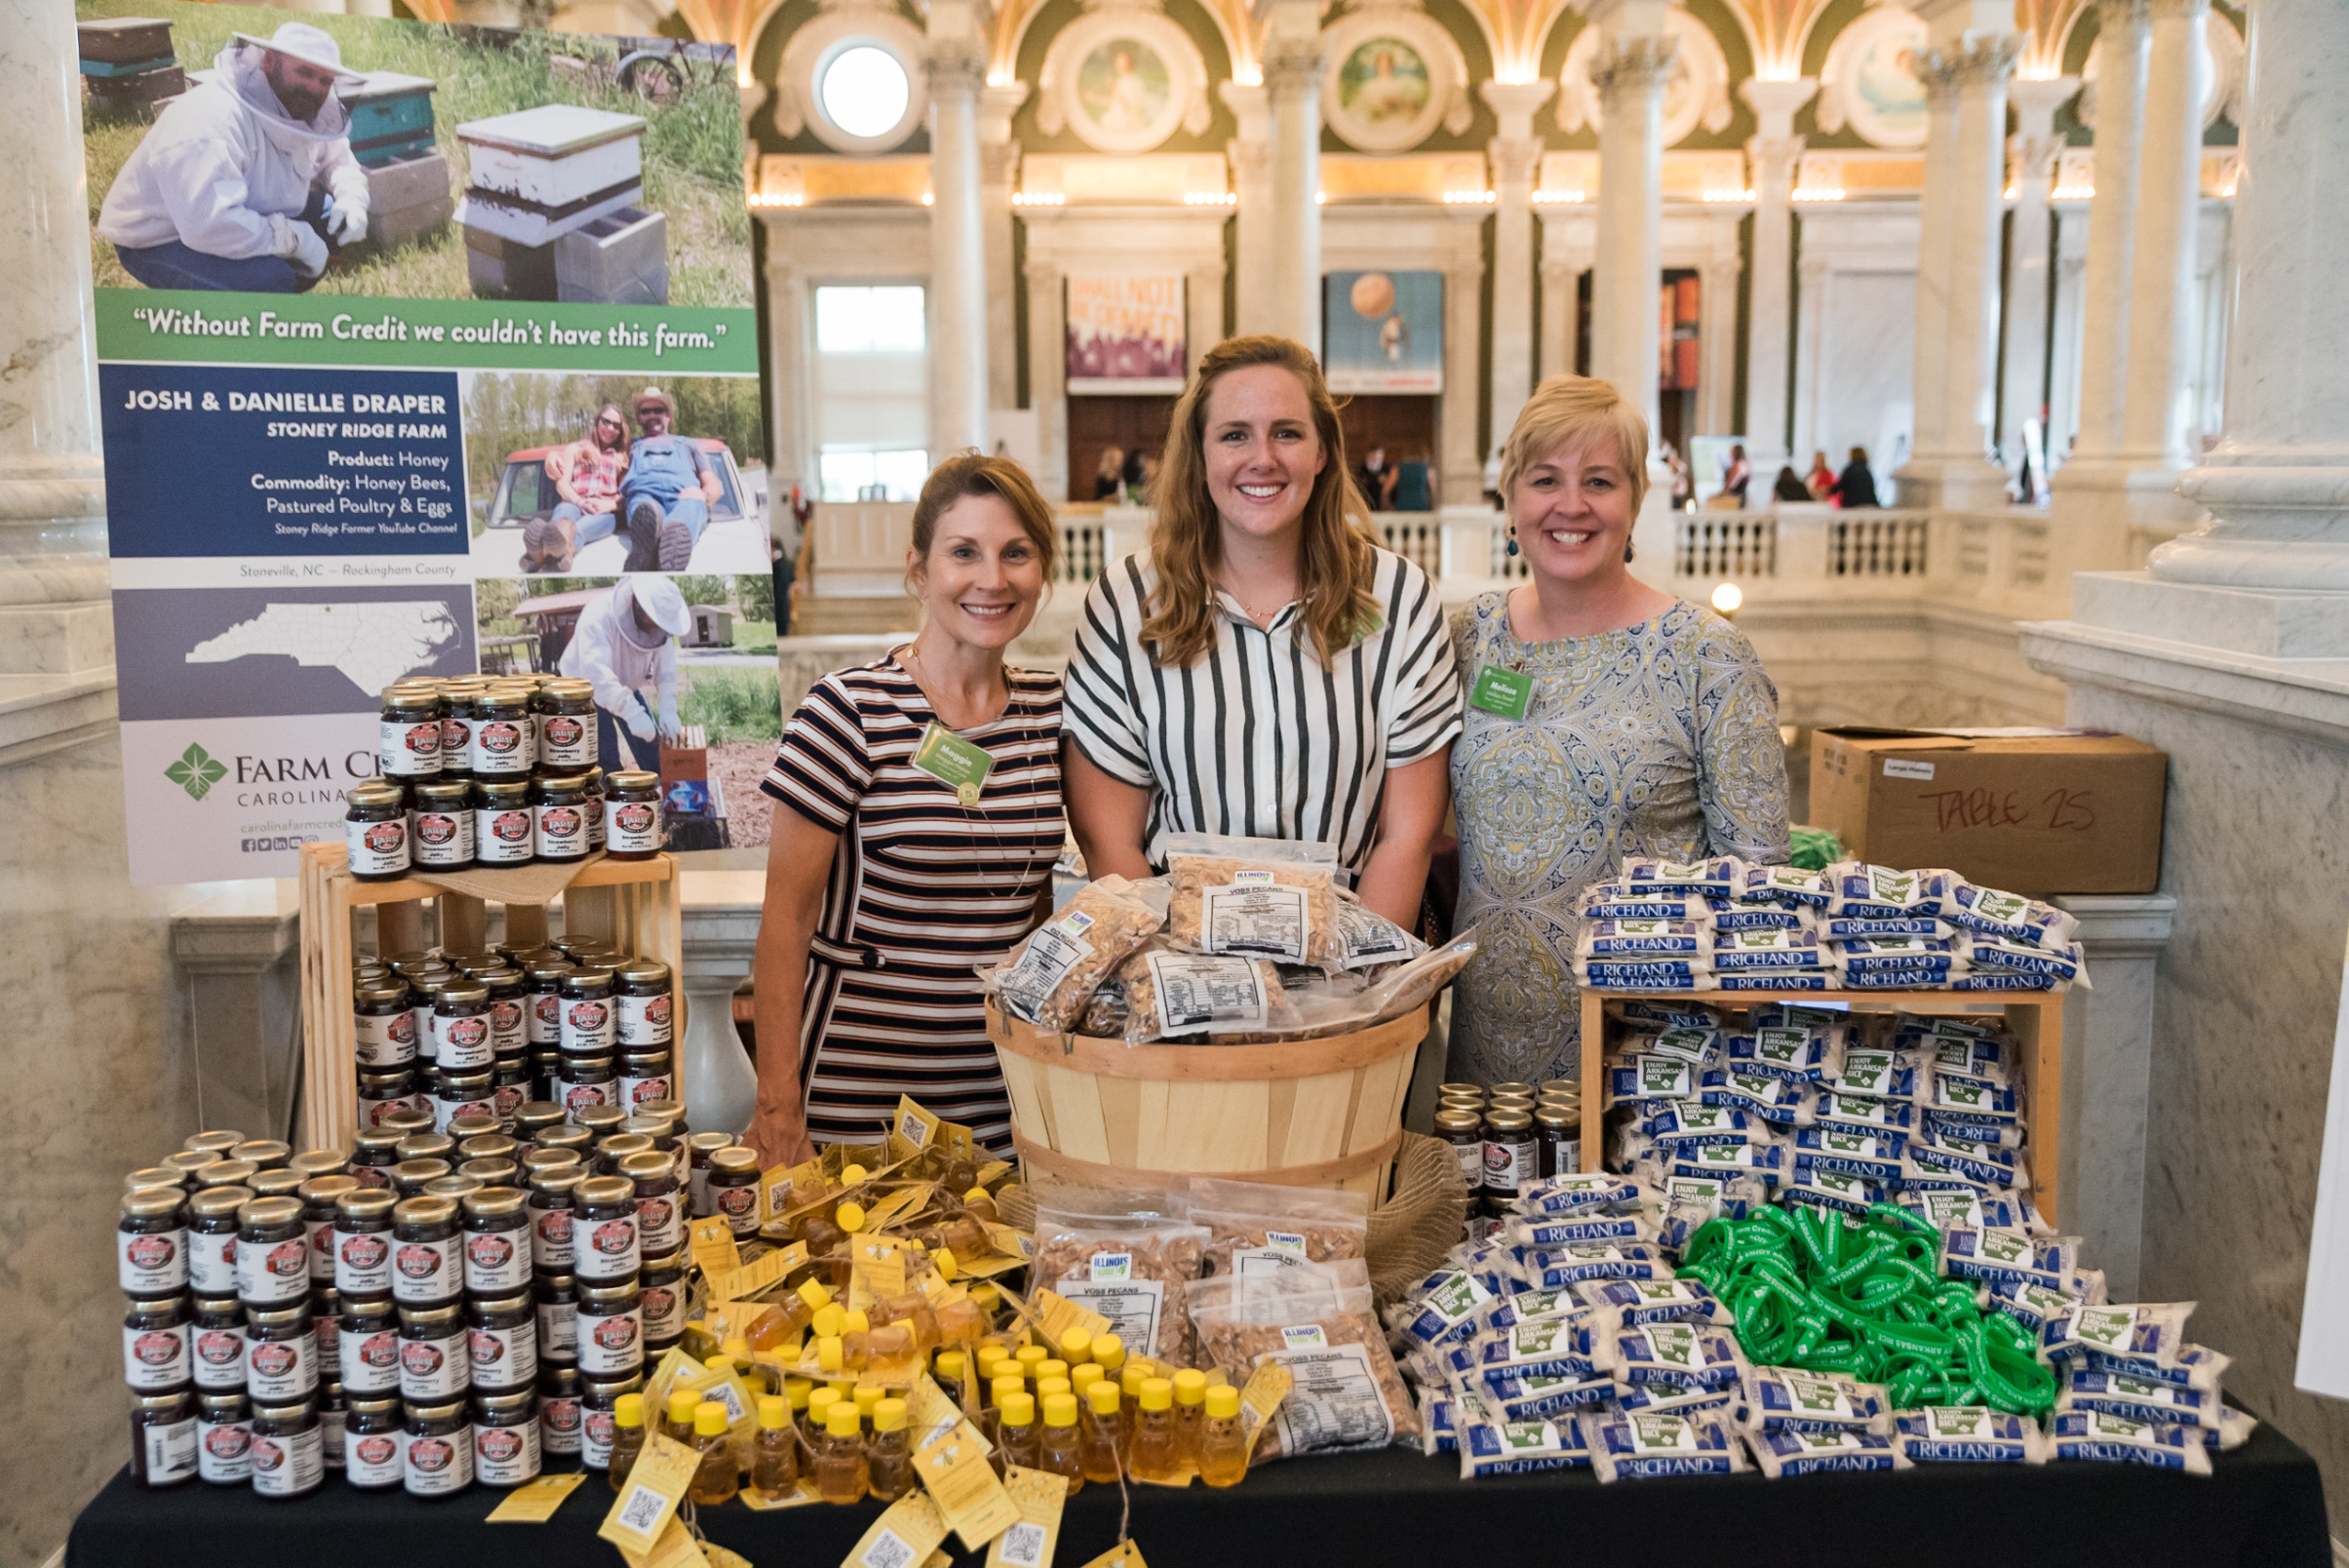 Farm Credit customers display their product during the fly-in at the Library of Congress